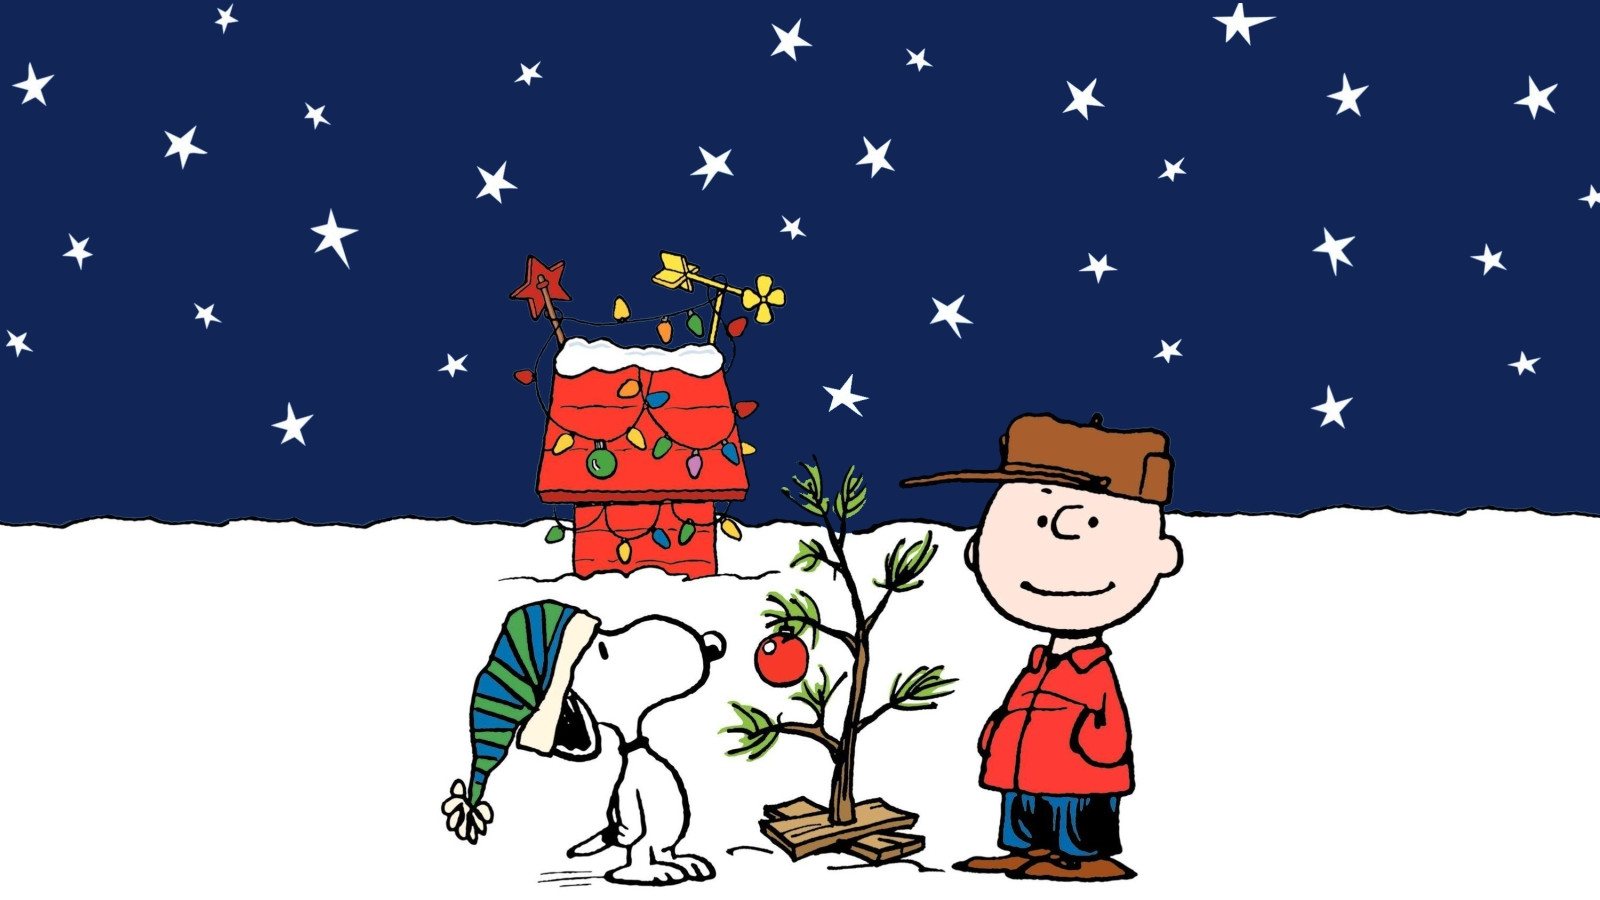 Christmas Peanuts Wallpaper